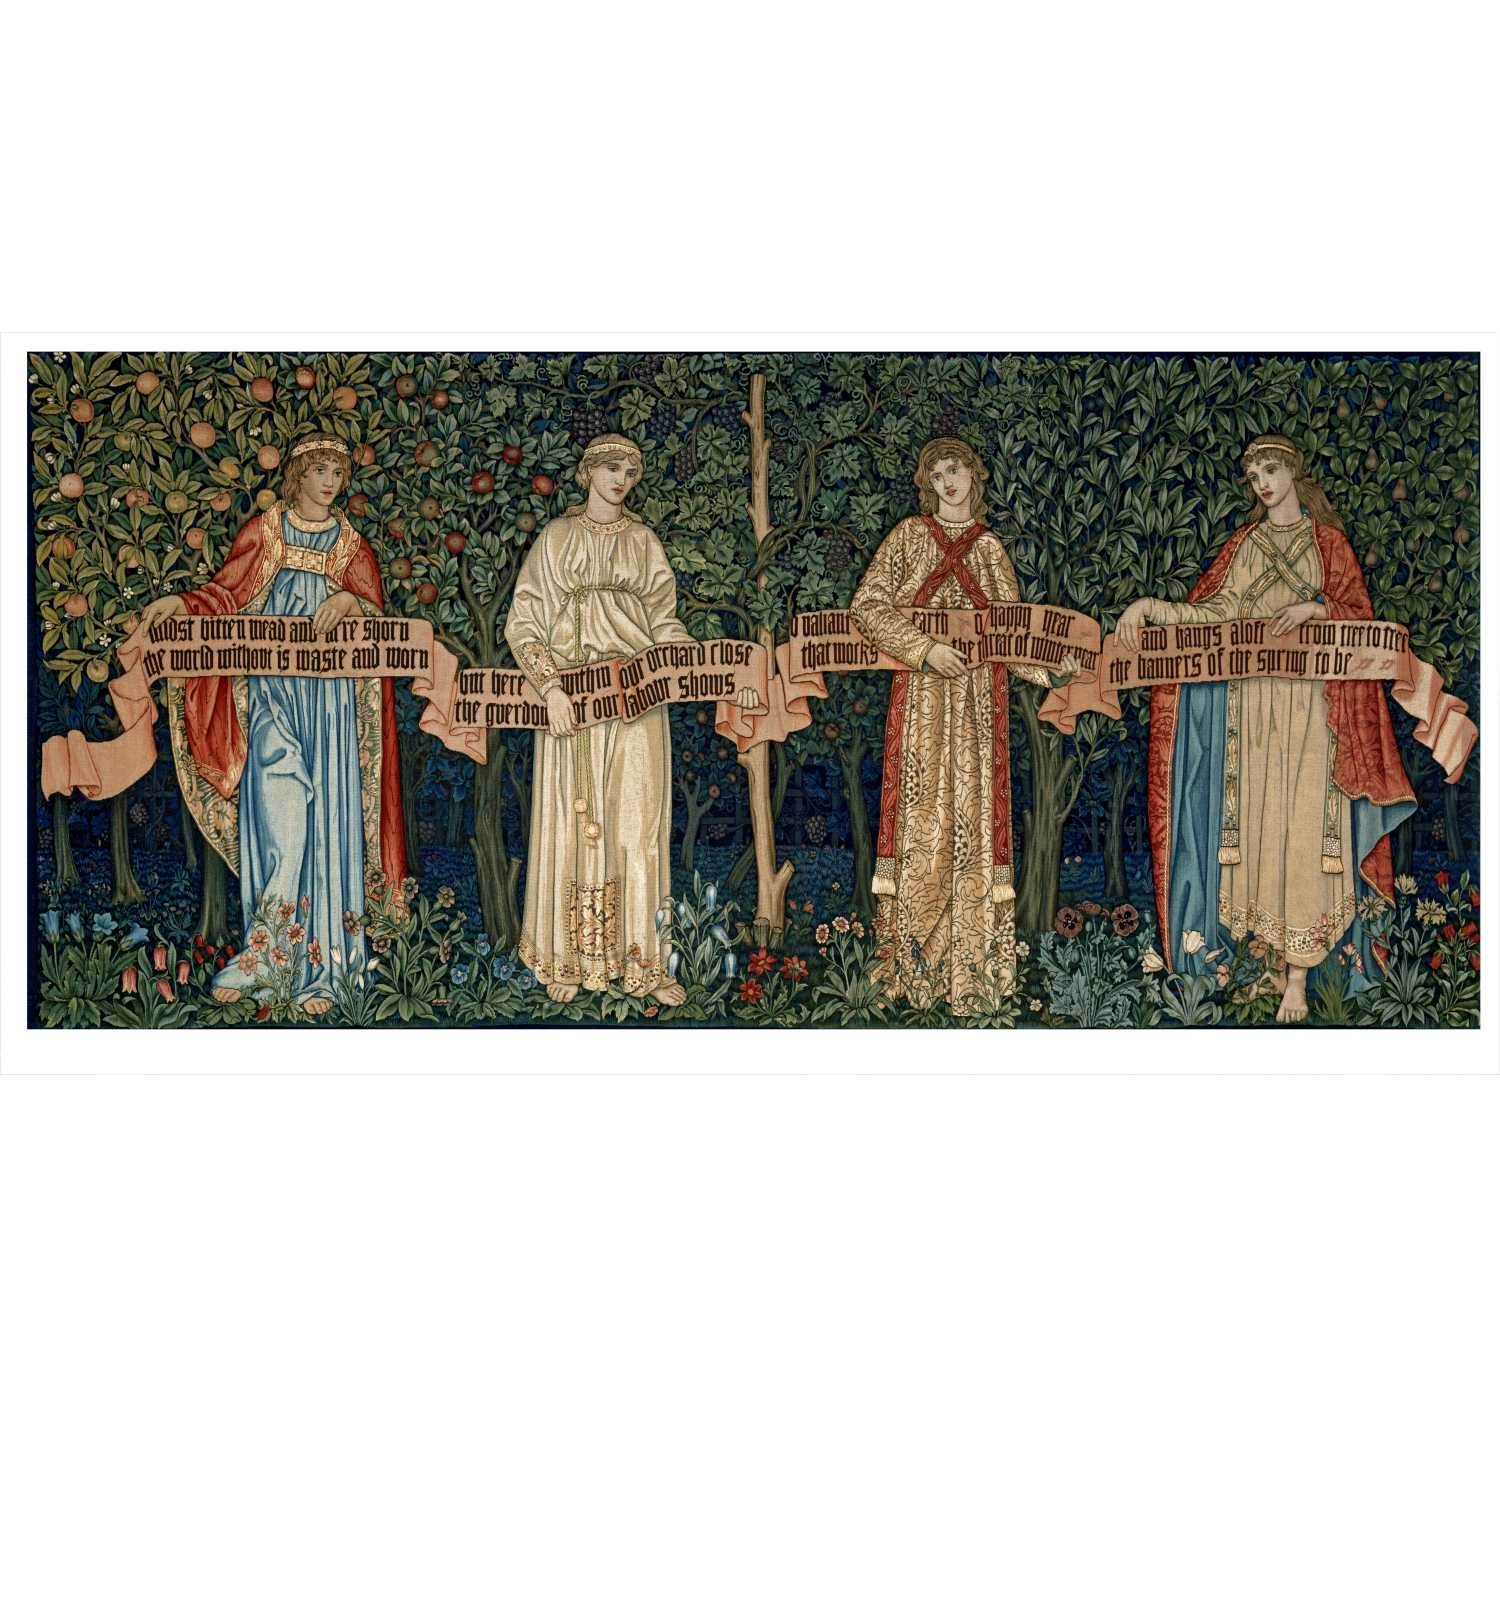 William Morris, John Henry Dearle, Morris & Co., Merton Abbey Workshop. The Orchard (o The Seasons) (L'hort d'arbres fruiters o Les estacions). 1890  © Victoria and Albert Museum, London.